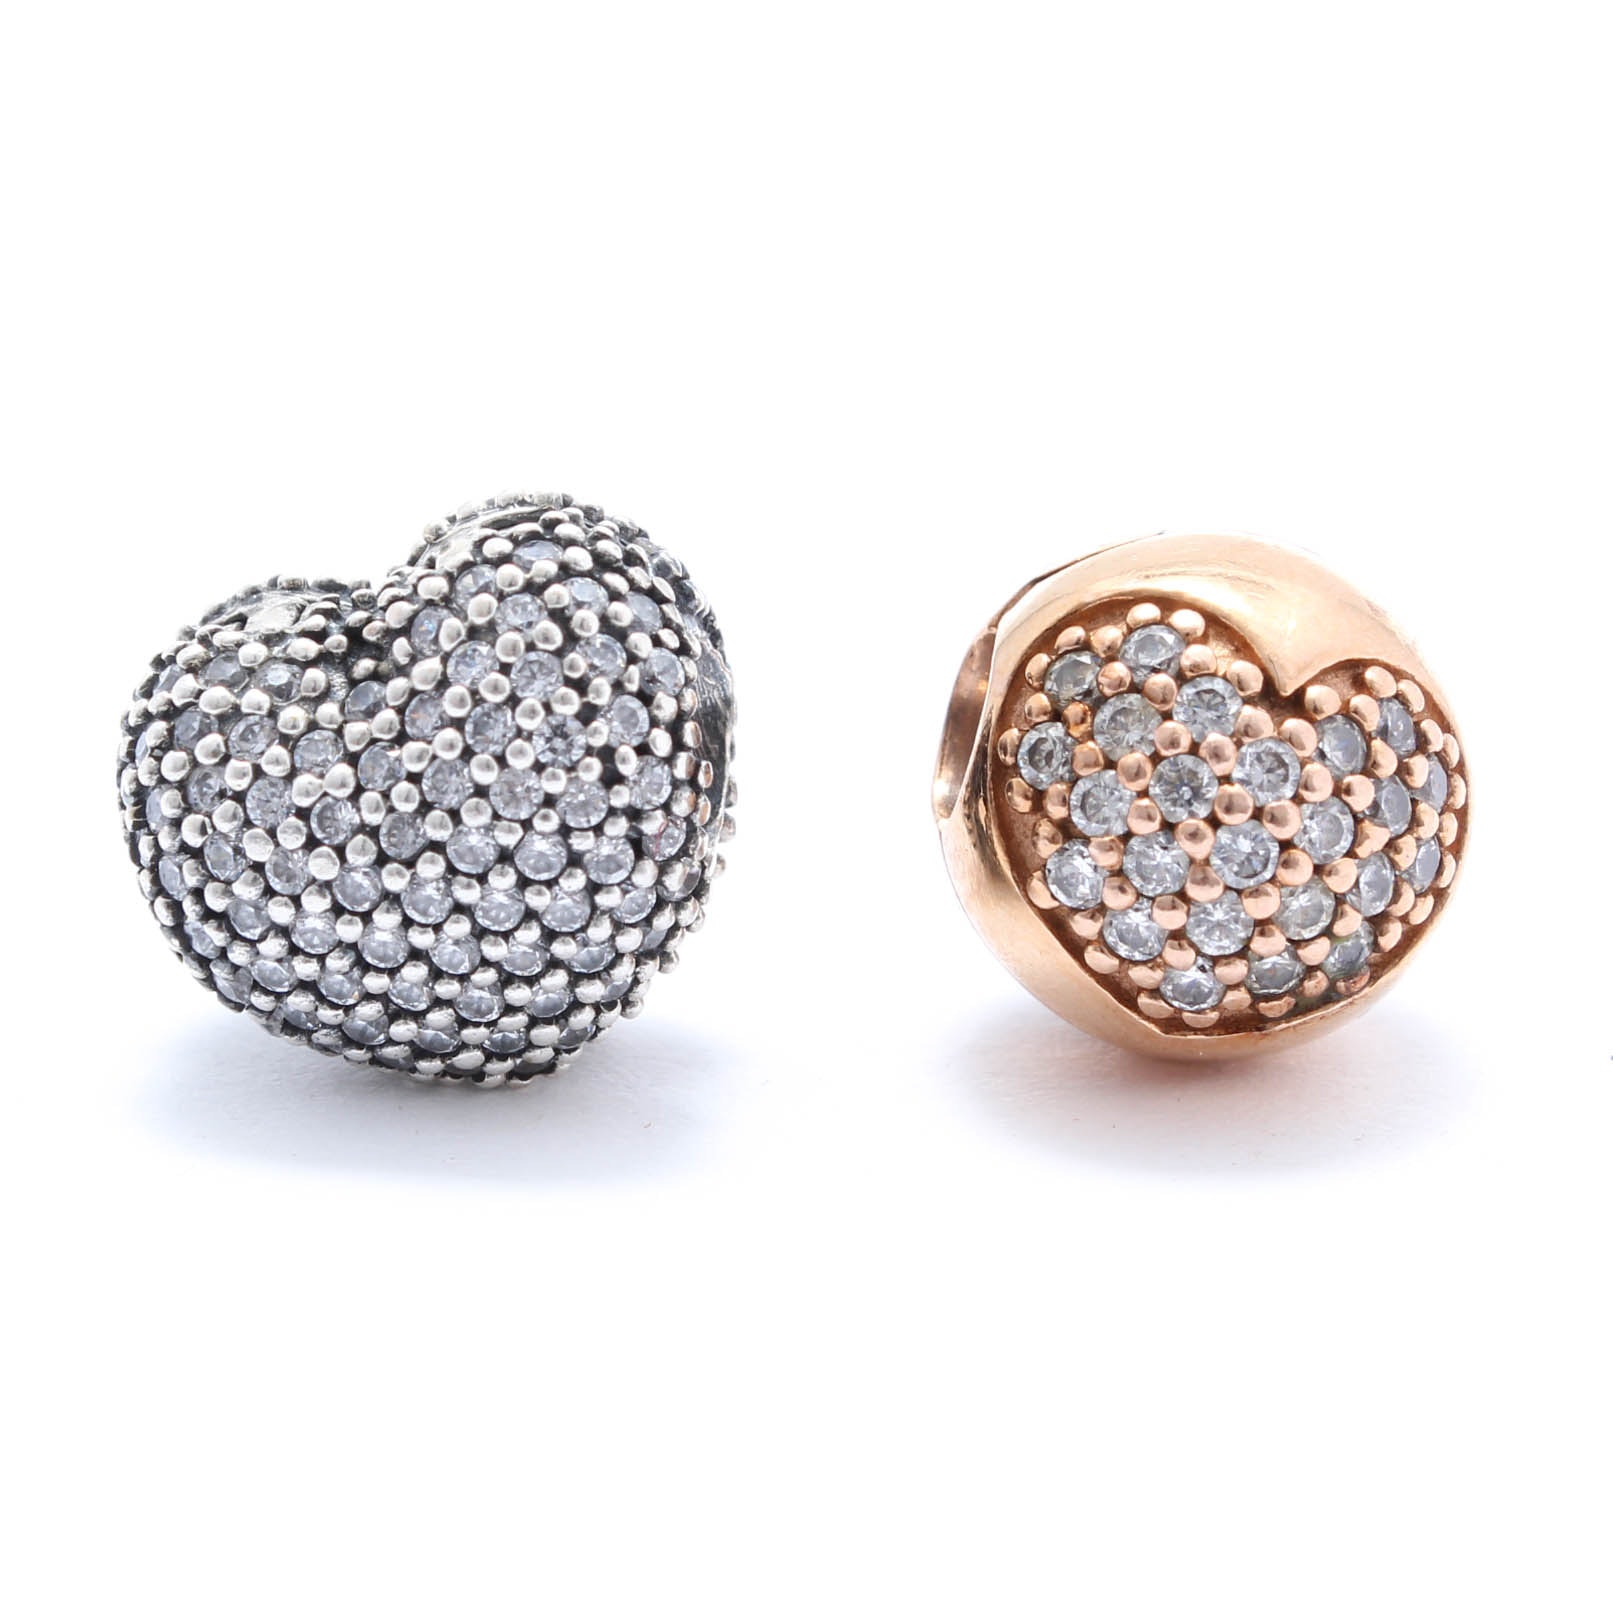 Two Pandora Sterling Silver Cubic Zirconia Beads